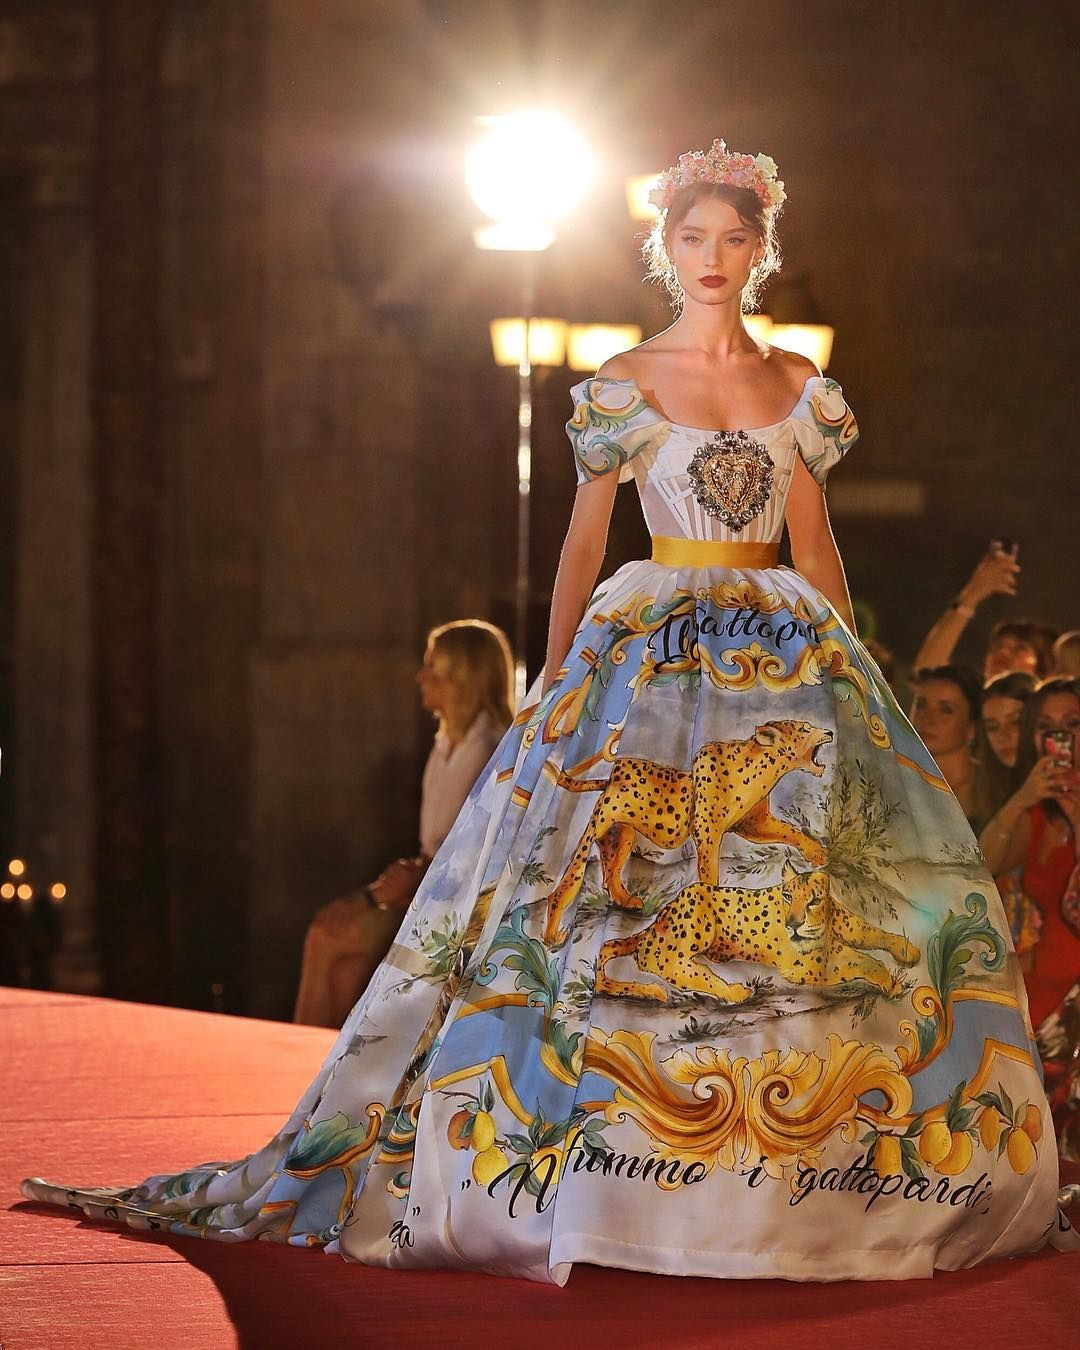 Dolce Gabbana Alta Moda 2017 The Best Pictures From Dolce Gabbana S Alta Moda Show Fashion Fancy Dresses Pretty Dresses